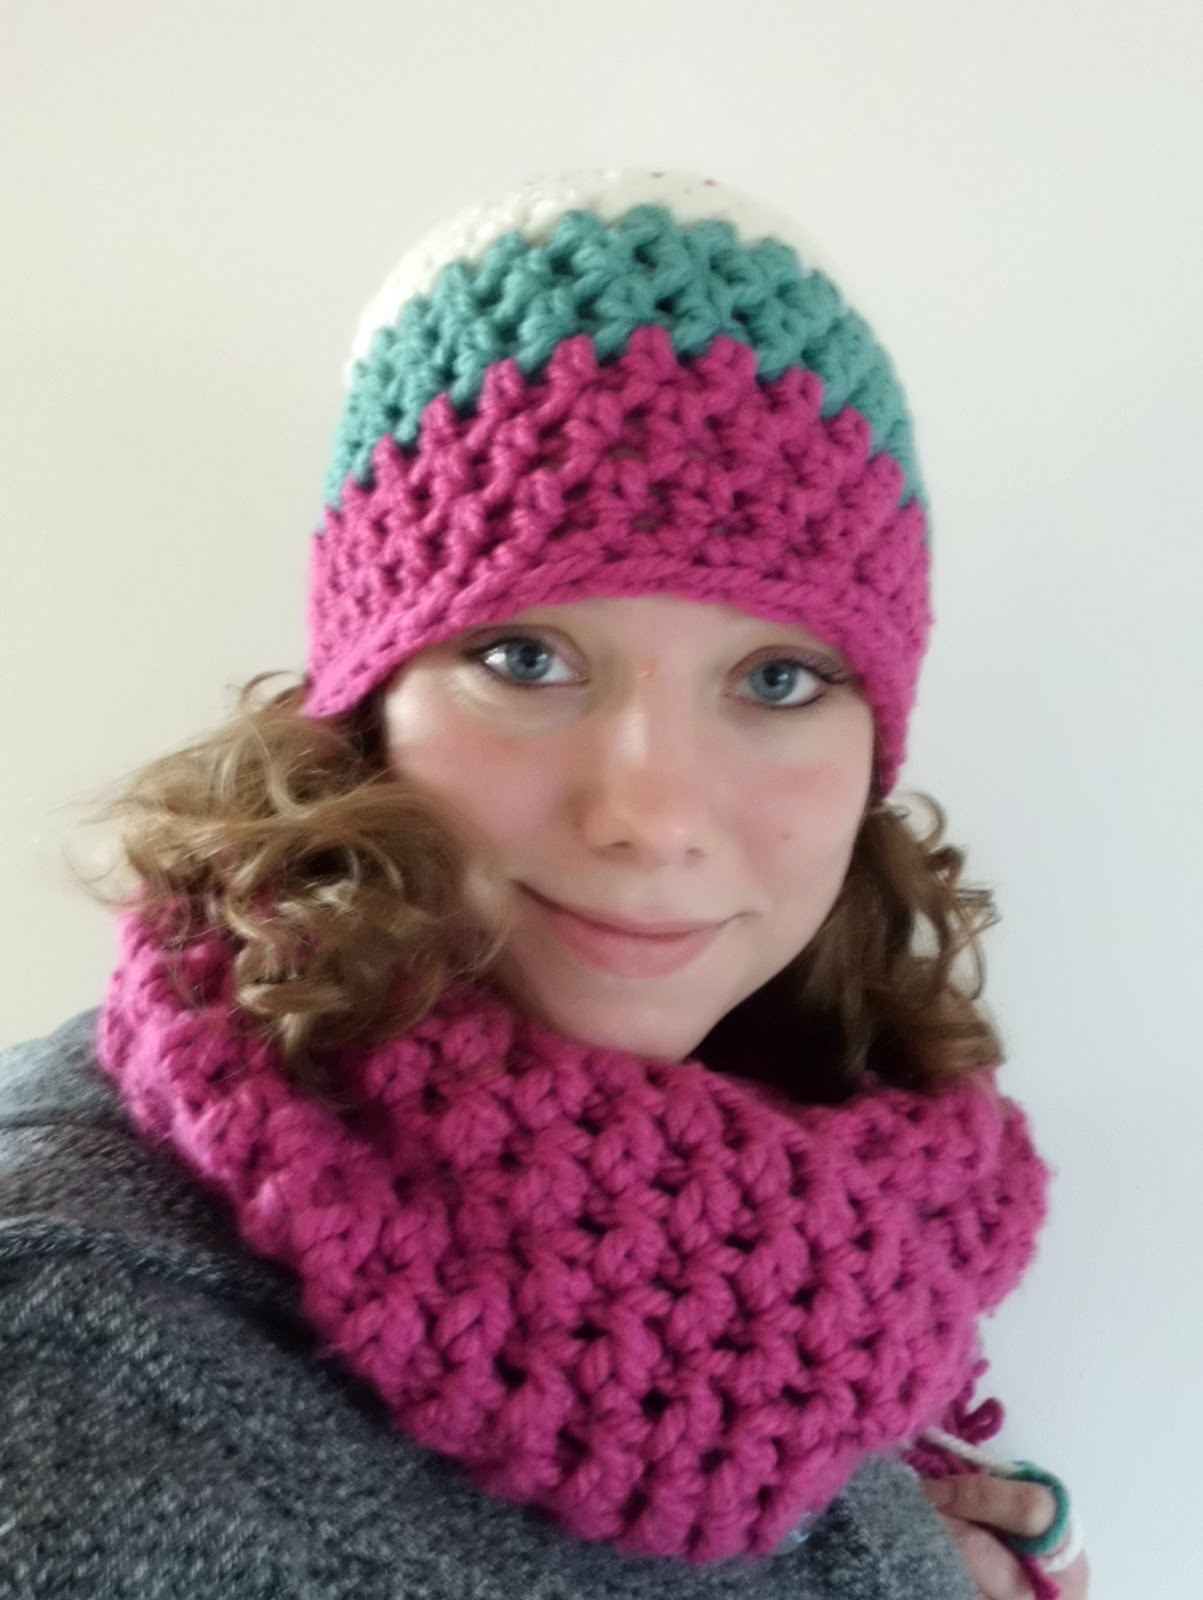 Fabulous Threadyarknot: 30 minuten muts patroon - Easy peasy hat pattern @YI98